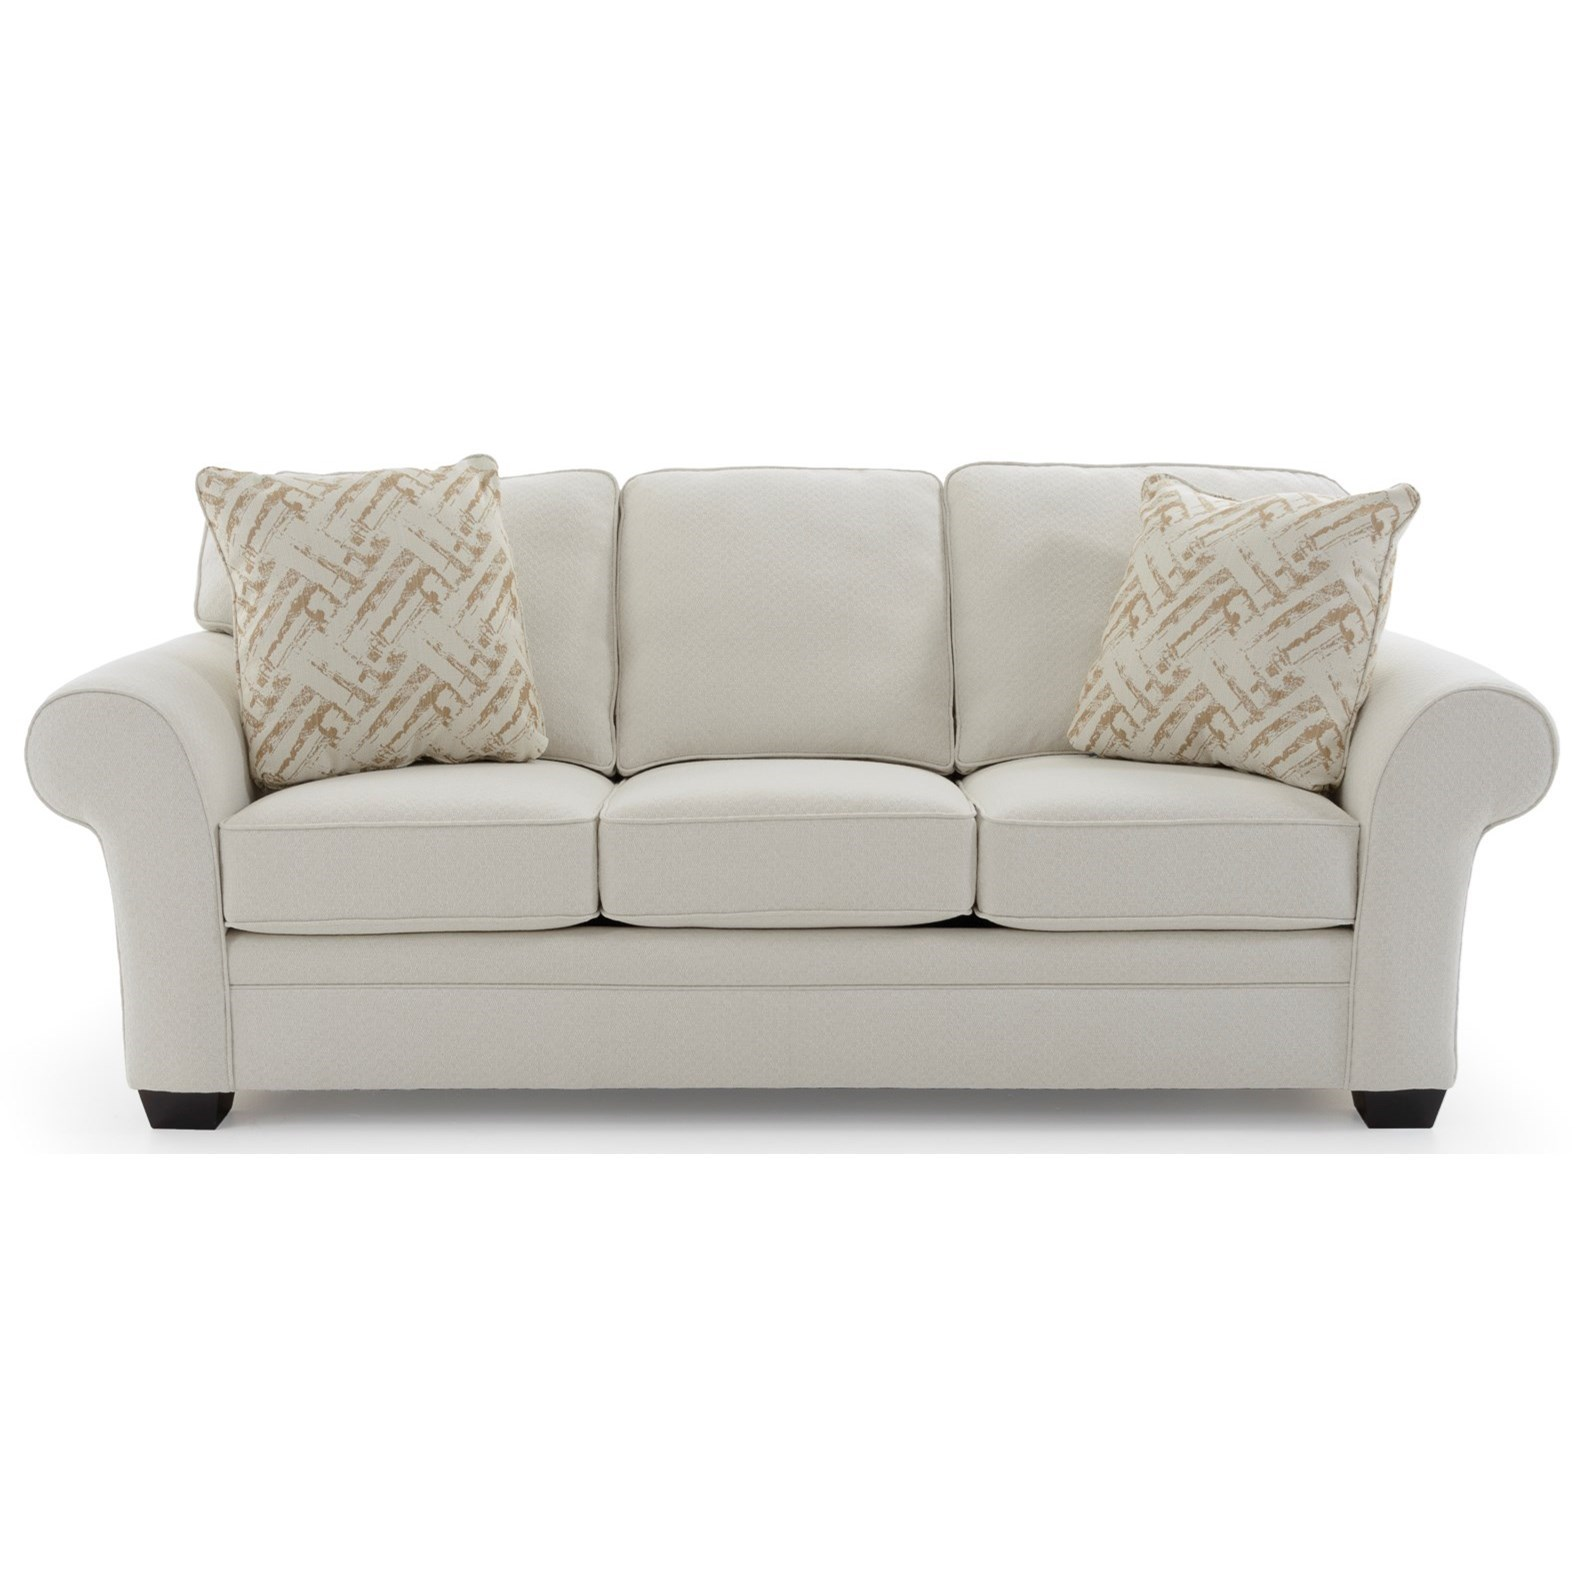 Broyhill Furniture Zachary Upholstered Sofa - Item Number: 7902-3 4833-92